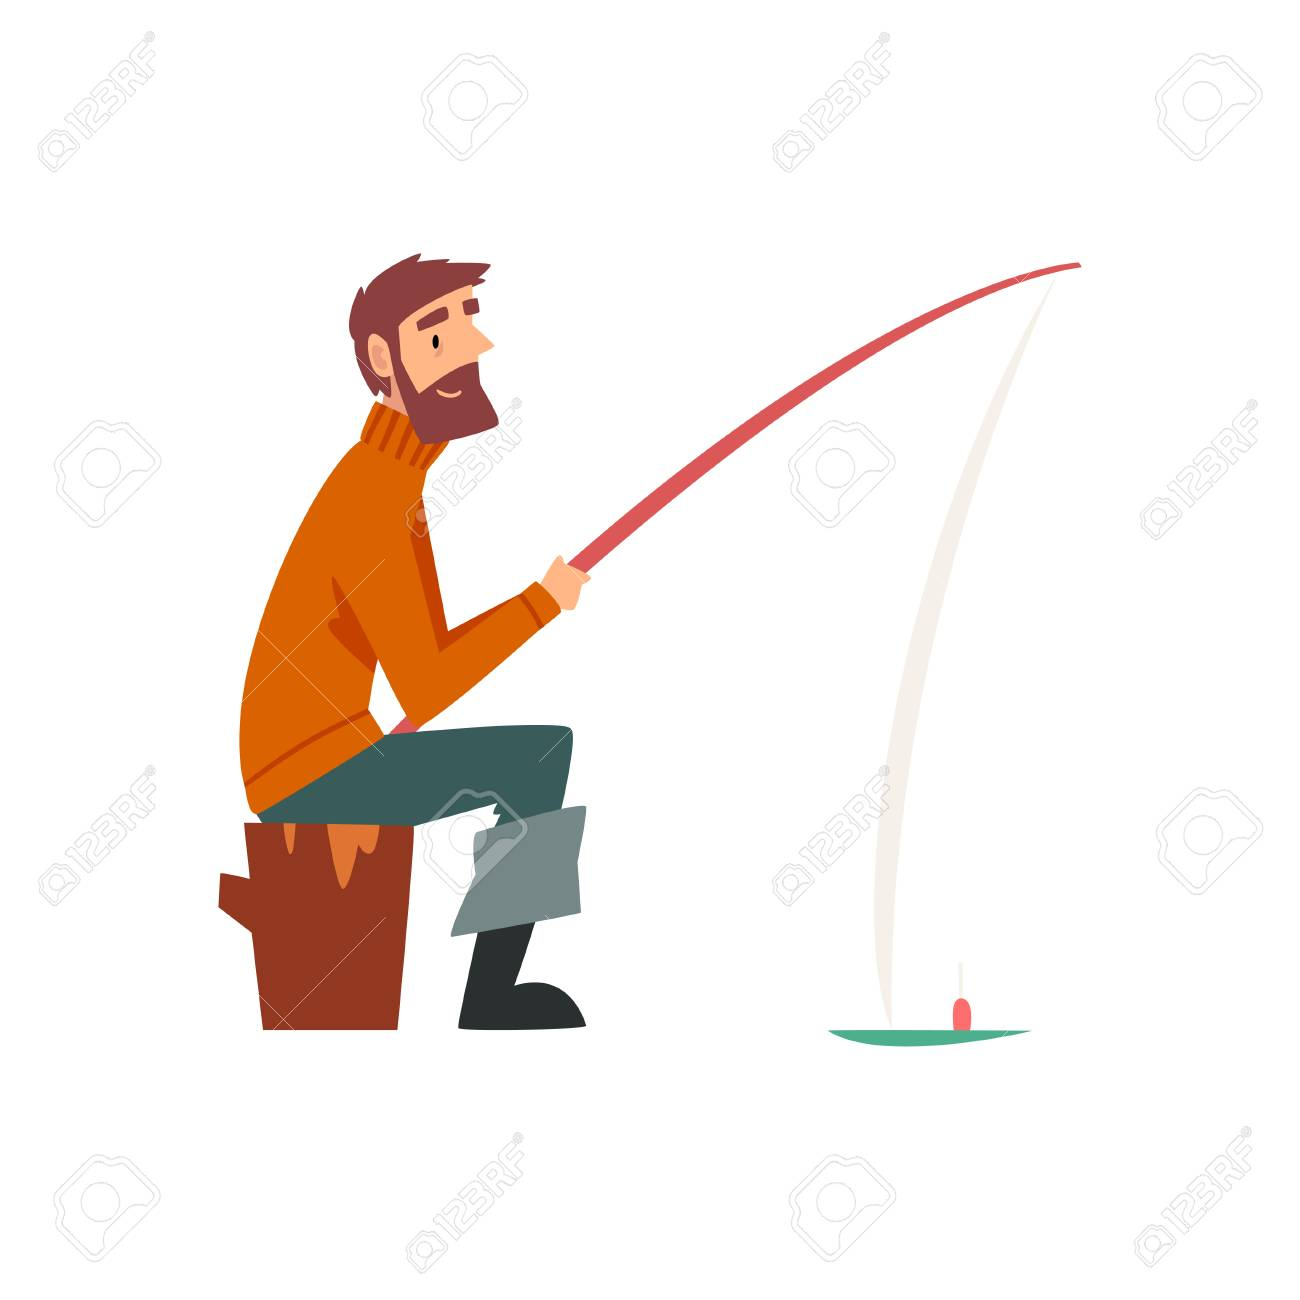 Bearded Fisherman Character Sitting on Shore with Fishing Rod Vector Illustration on White Background. - 123929338